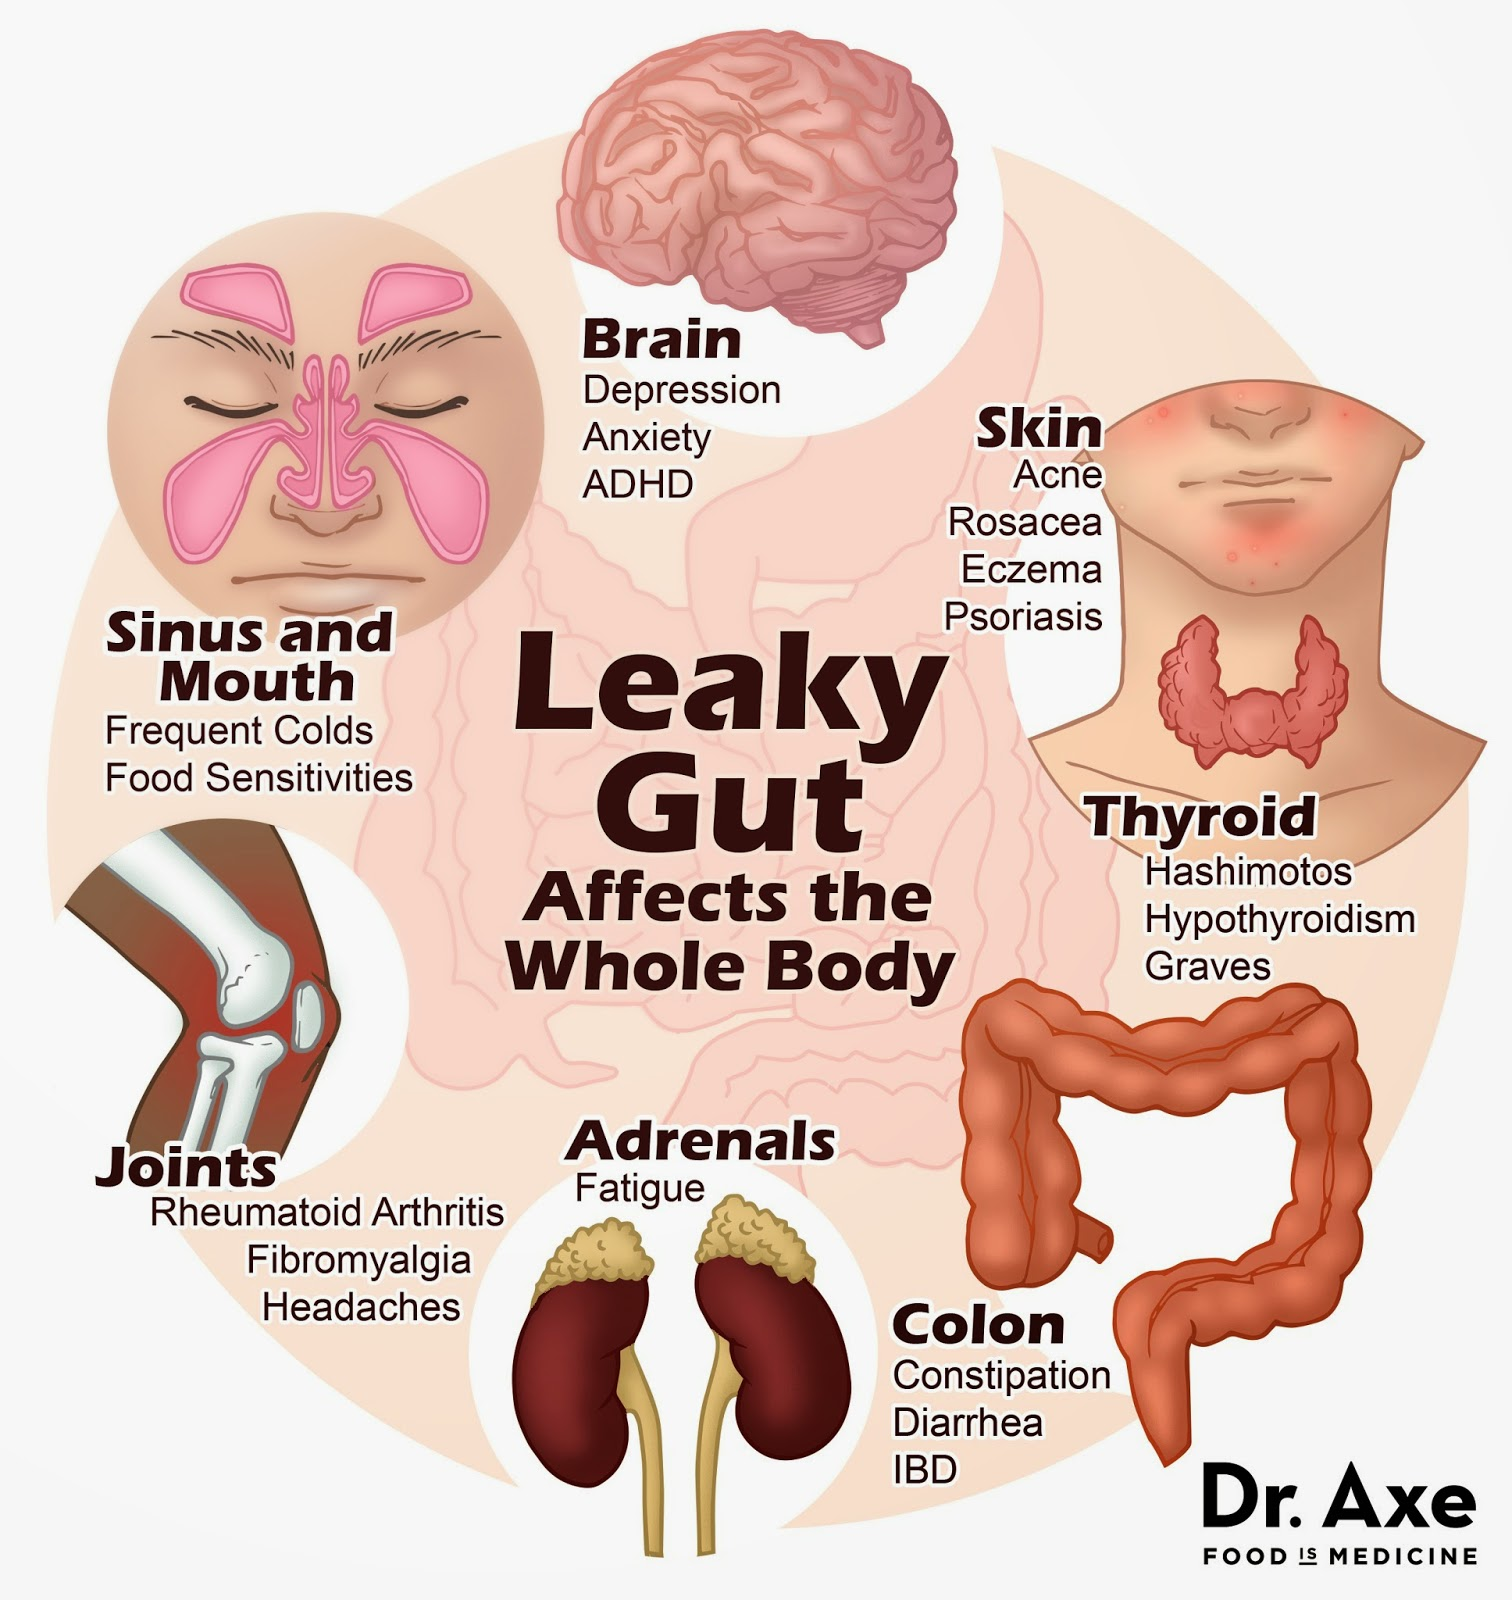 leaky gut skin sinus thyroid acne psoriasis causes cystic